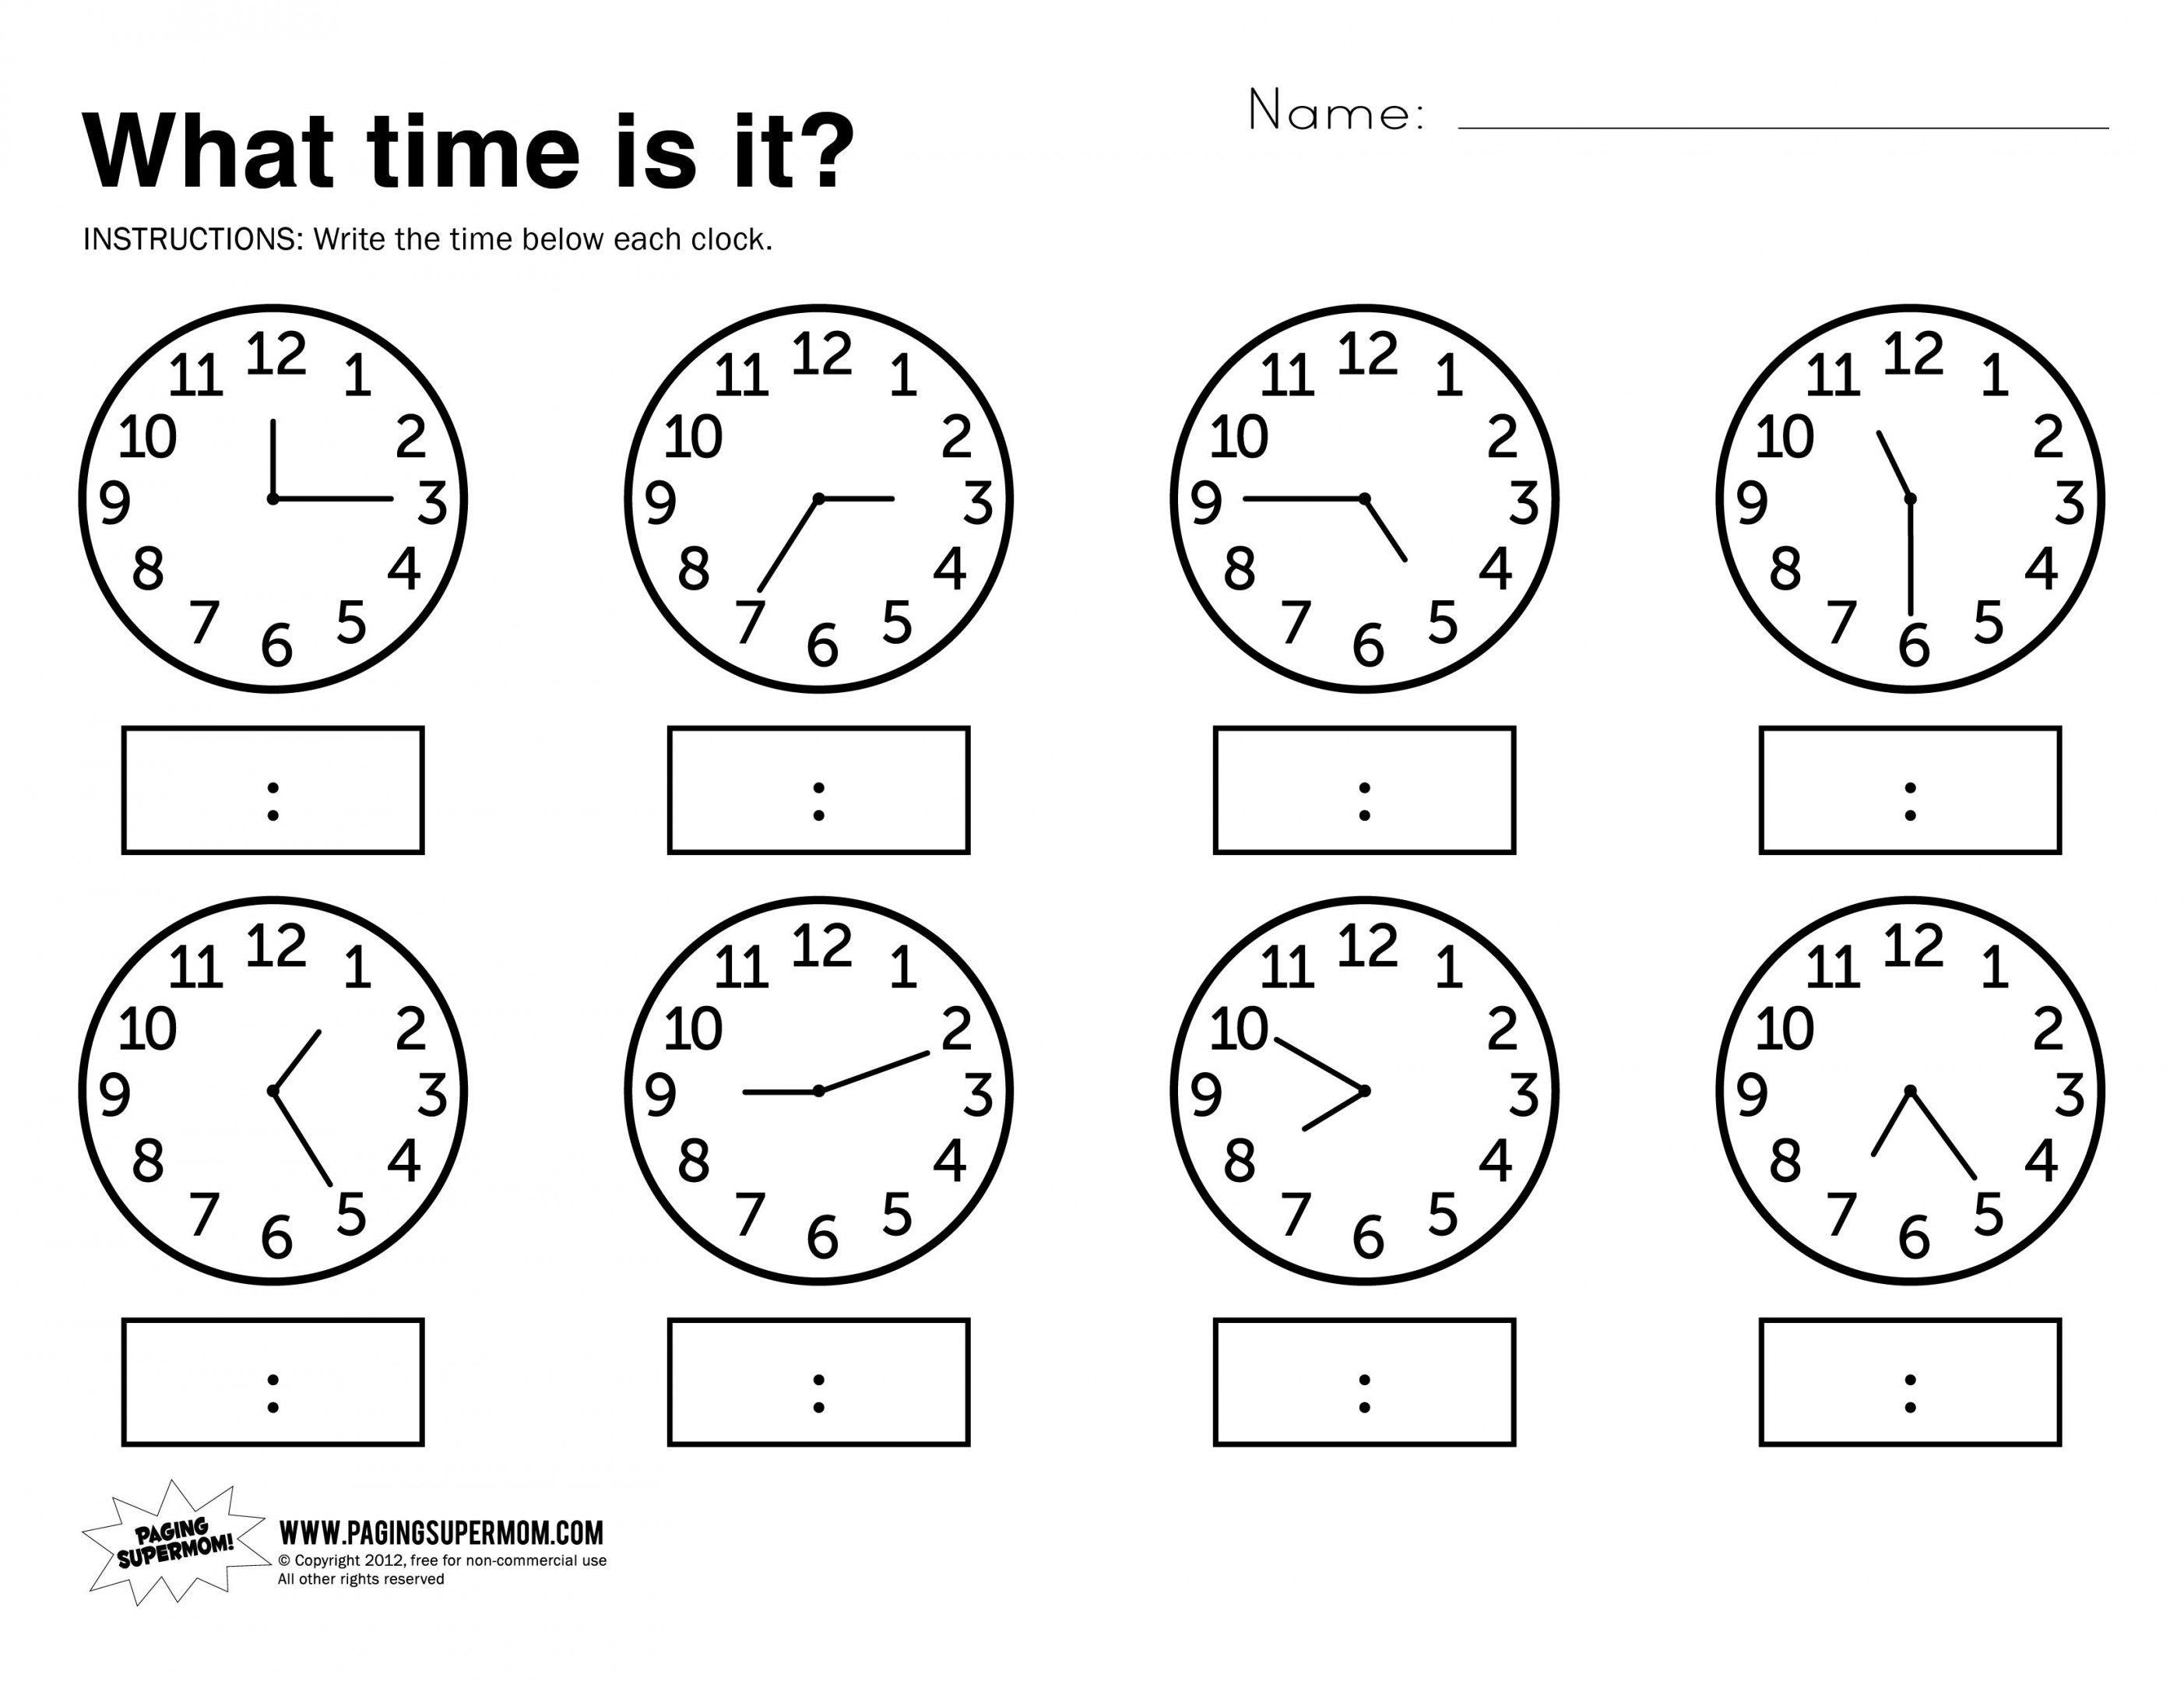 Telling Time Worksheets Grade 3 | Lostranquillos - Free Printable | Free Printable Time Worksheets For Grade 3